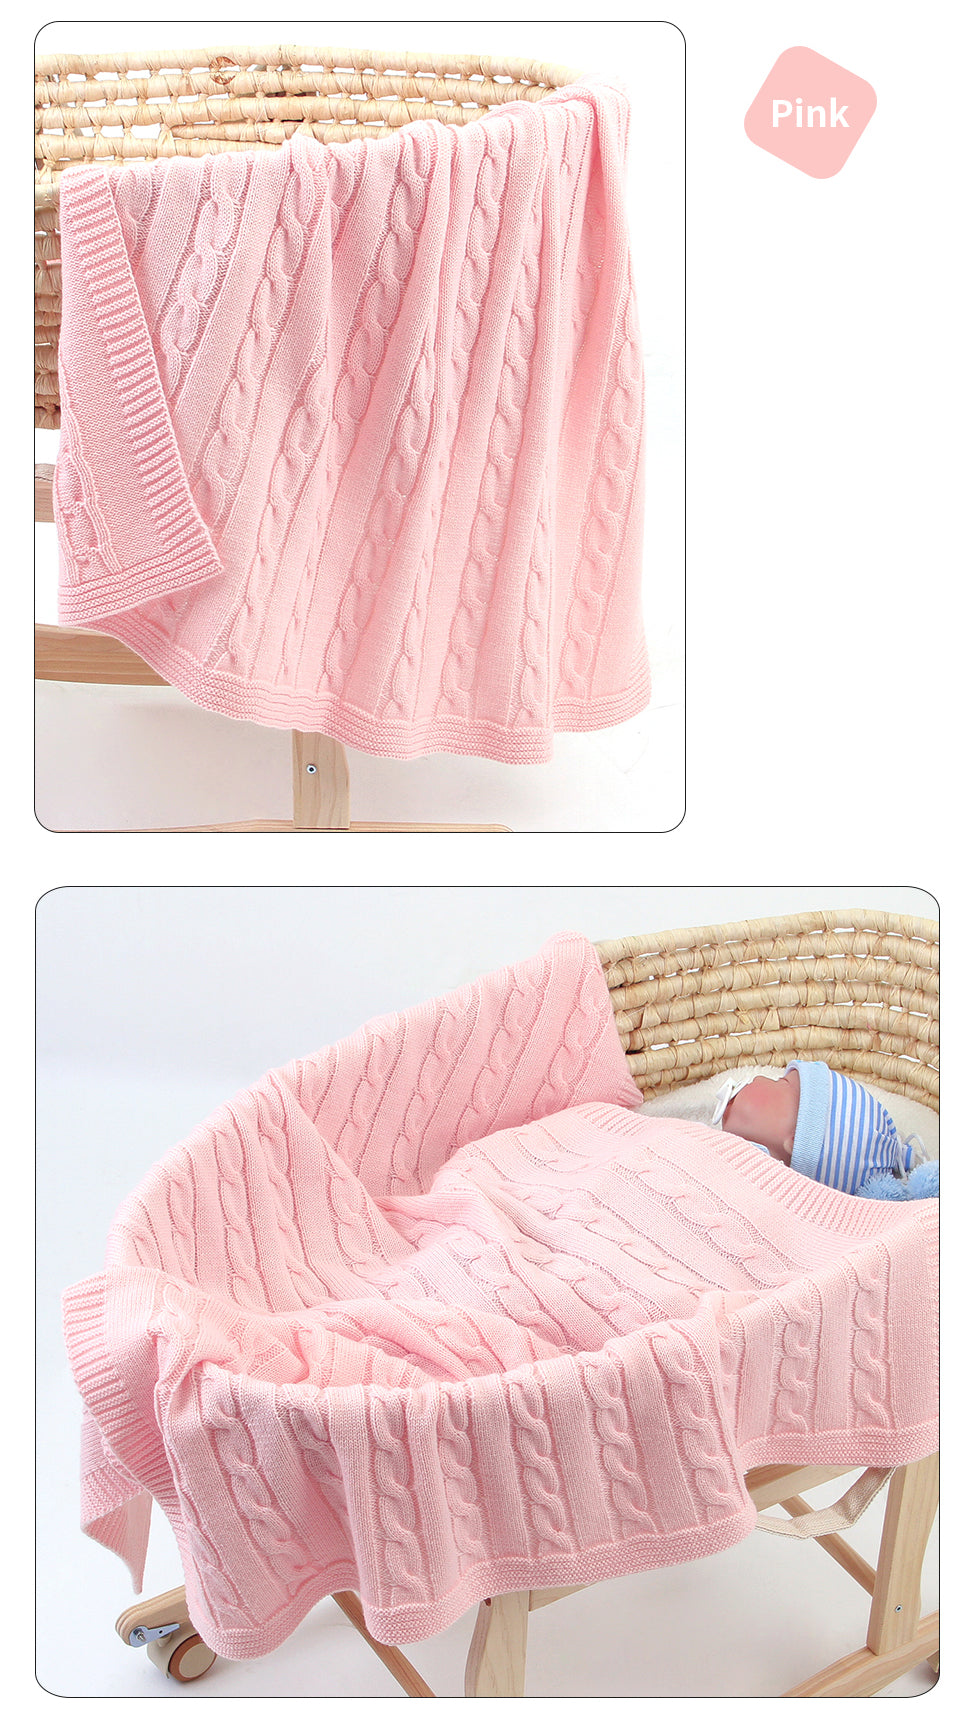 flannel receiving blanket